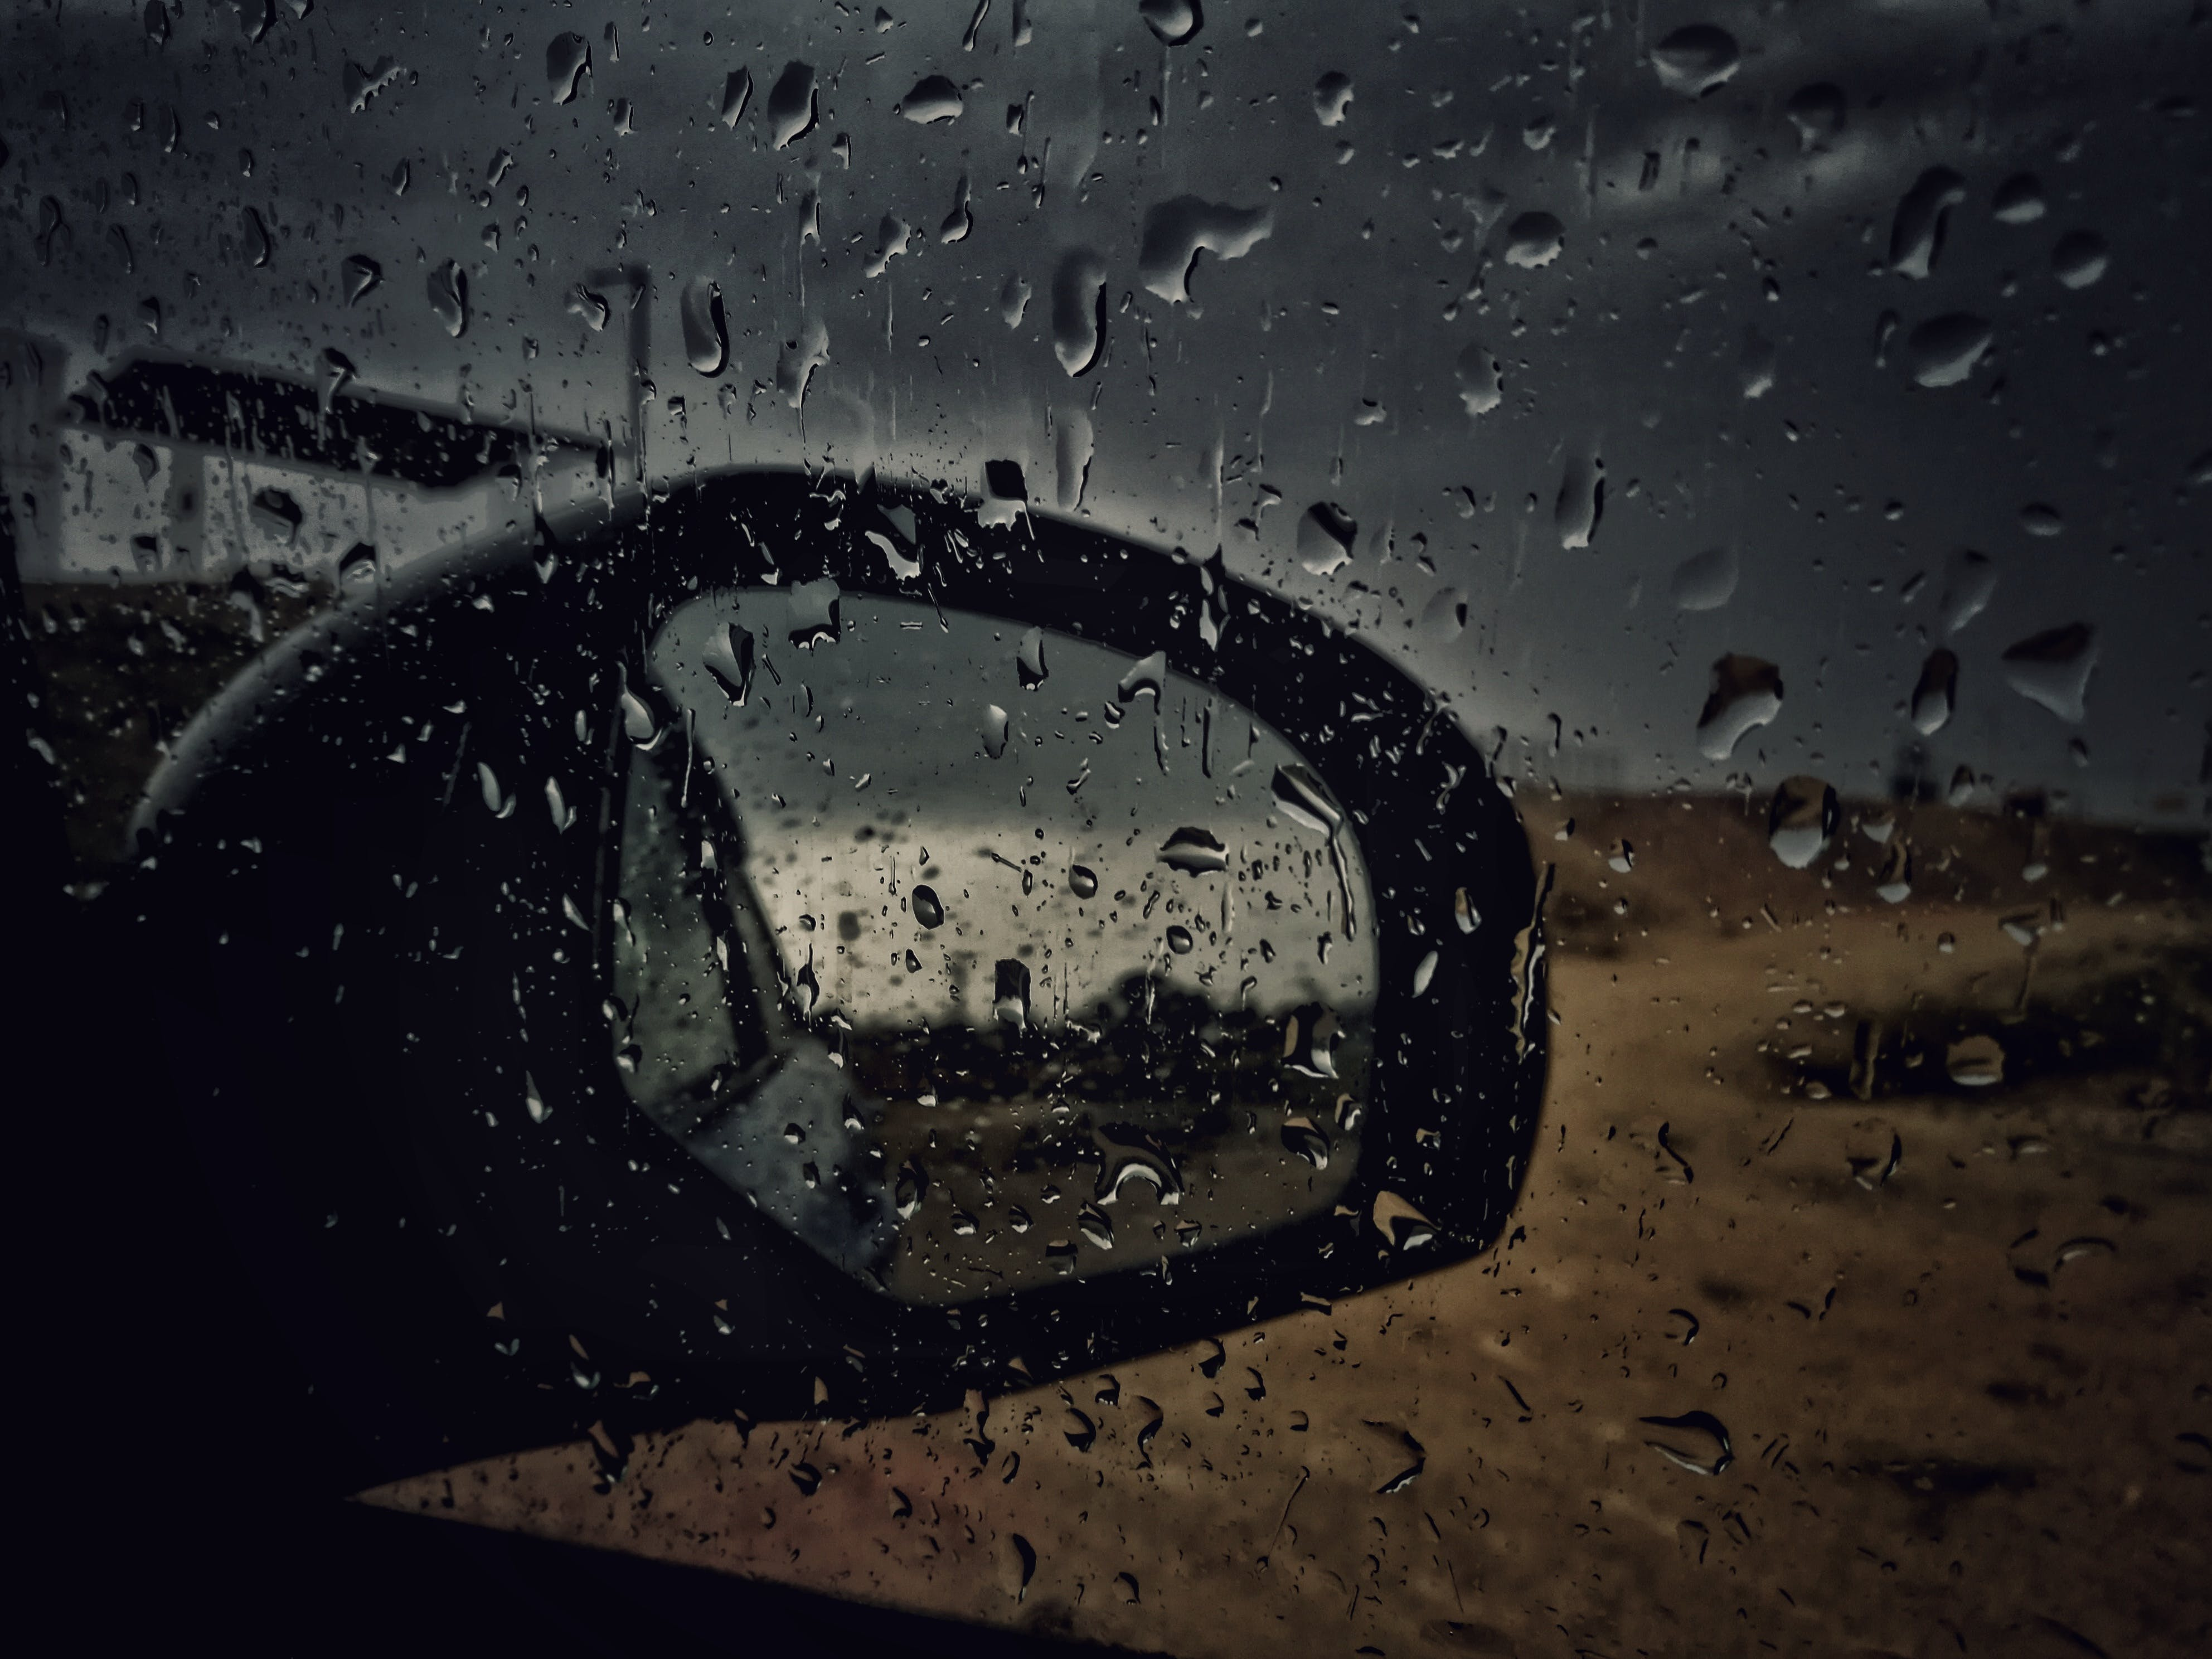 Car Window Panel With Water Droplets